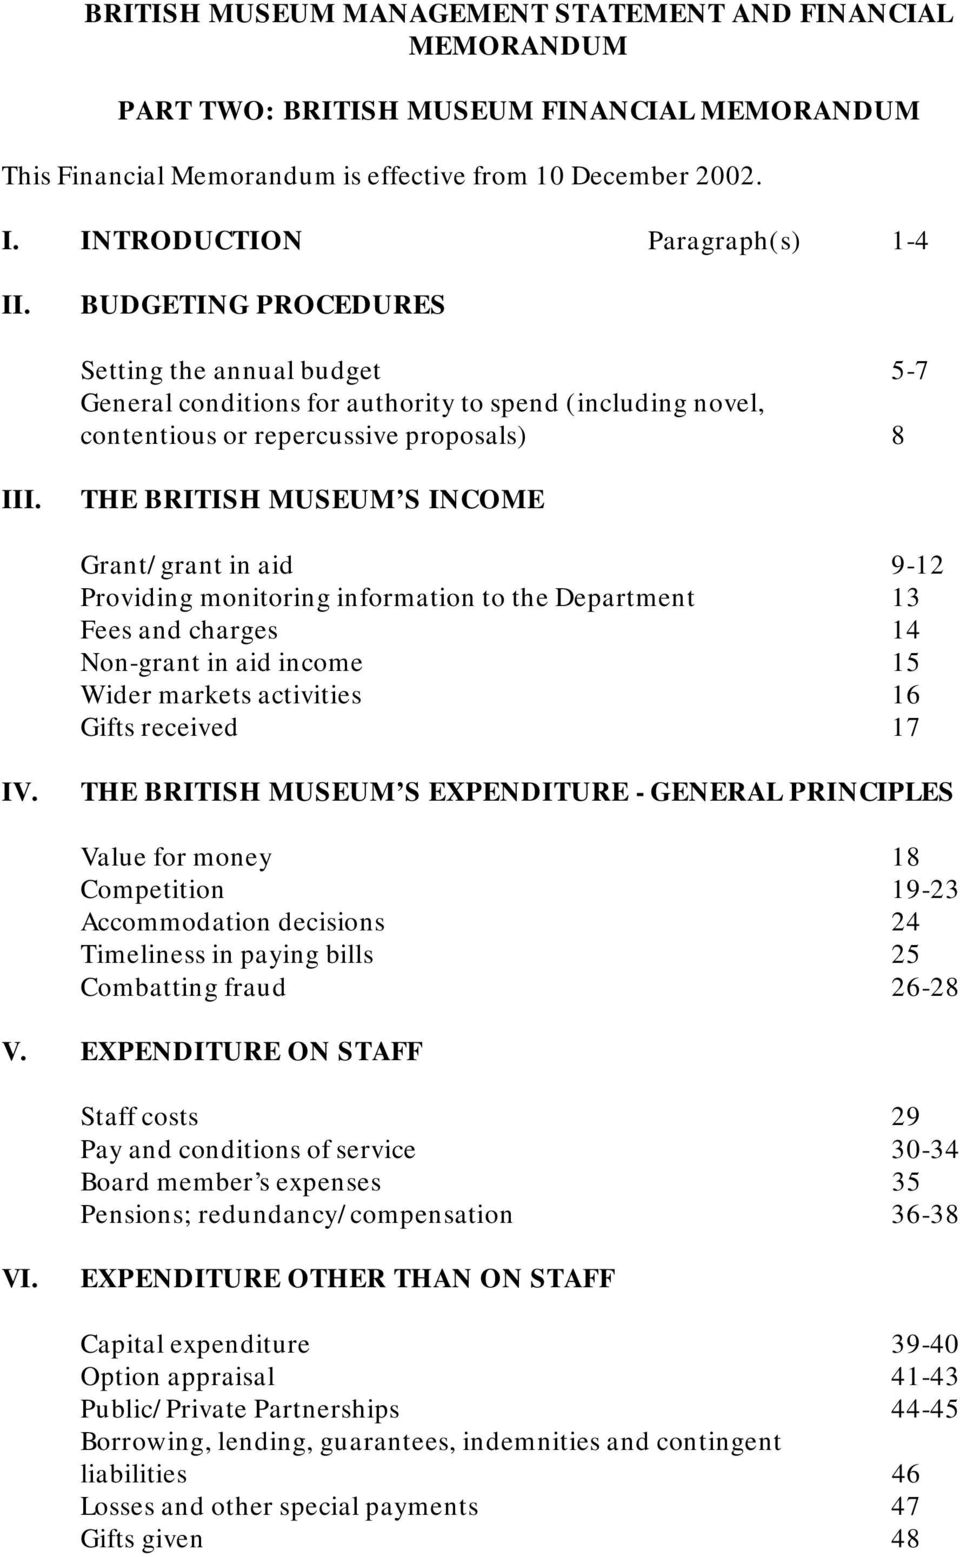 THE BRITISH MUSEUM S INCOME Grant/grant in aid 9-12 Providing monitoring information to the Department 13 Fees and charges 14 Non-grant in aid income 15 Wider markets activities 16 Gifts received 17